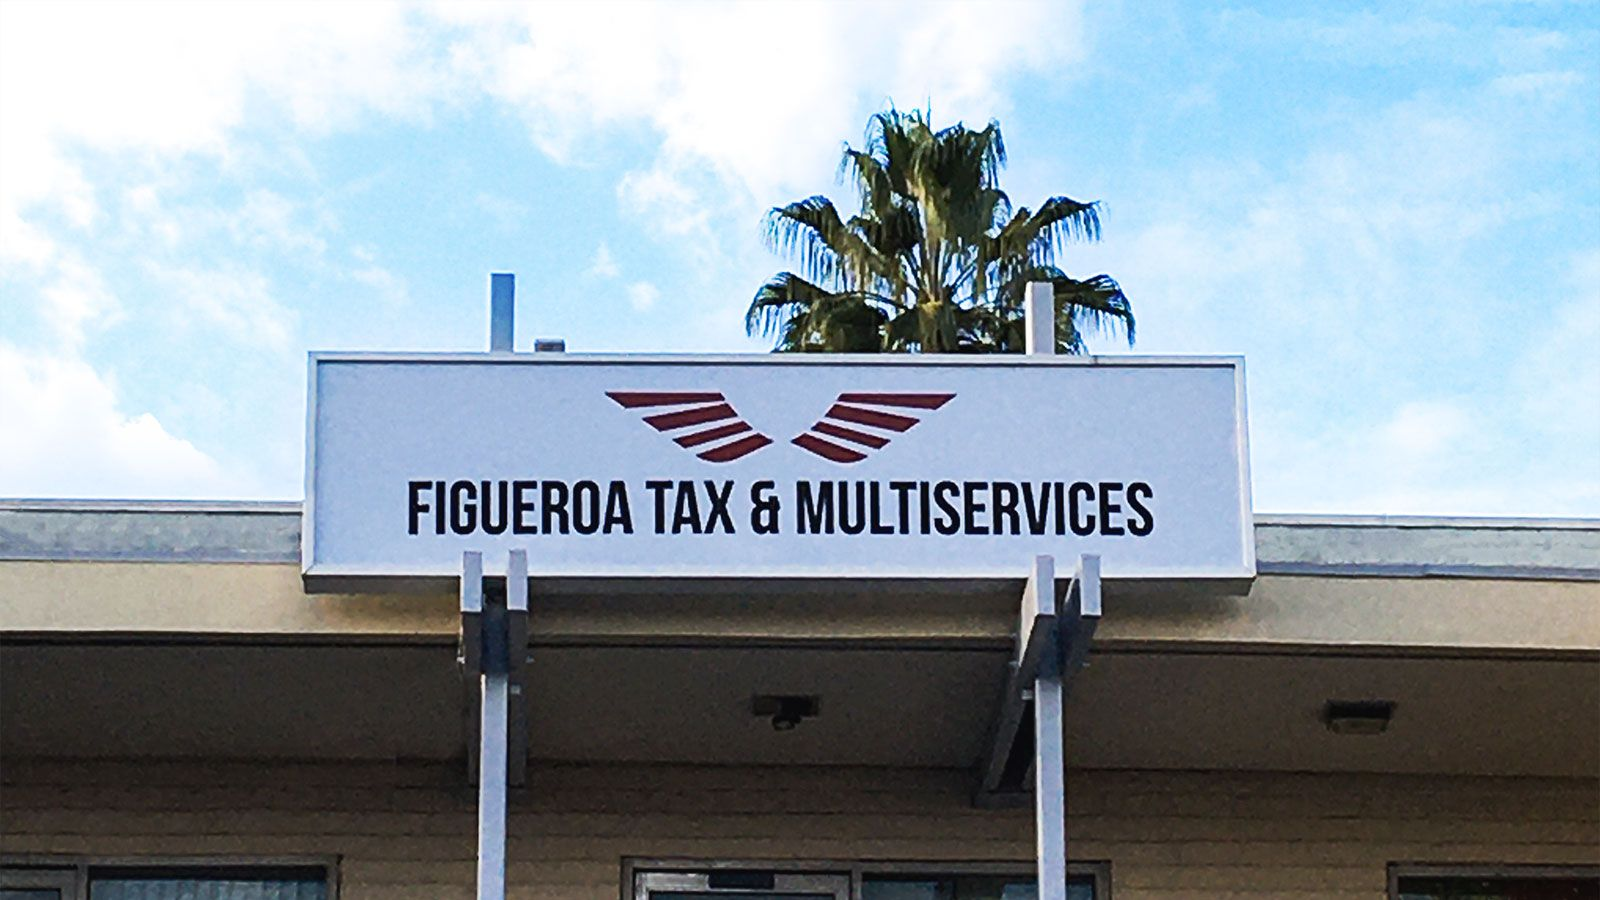 Figueroa Tax & Multiservices outdoor light box displaying the company name and logo made of aluminum and acrylic for branding